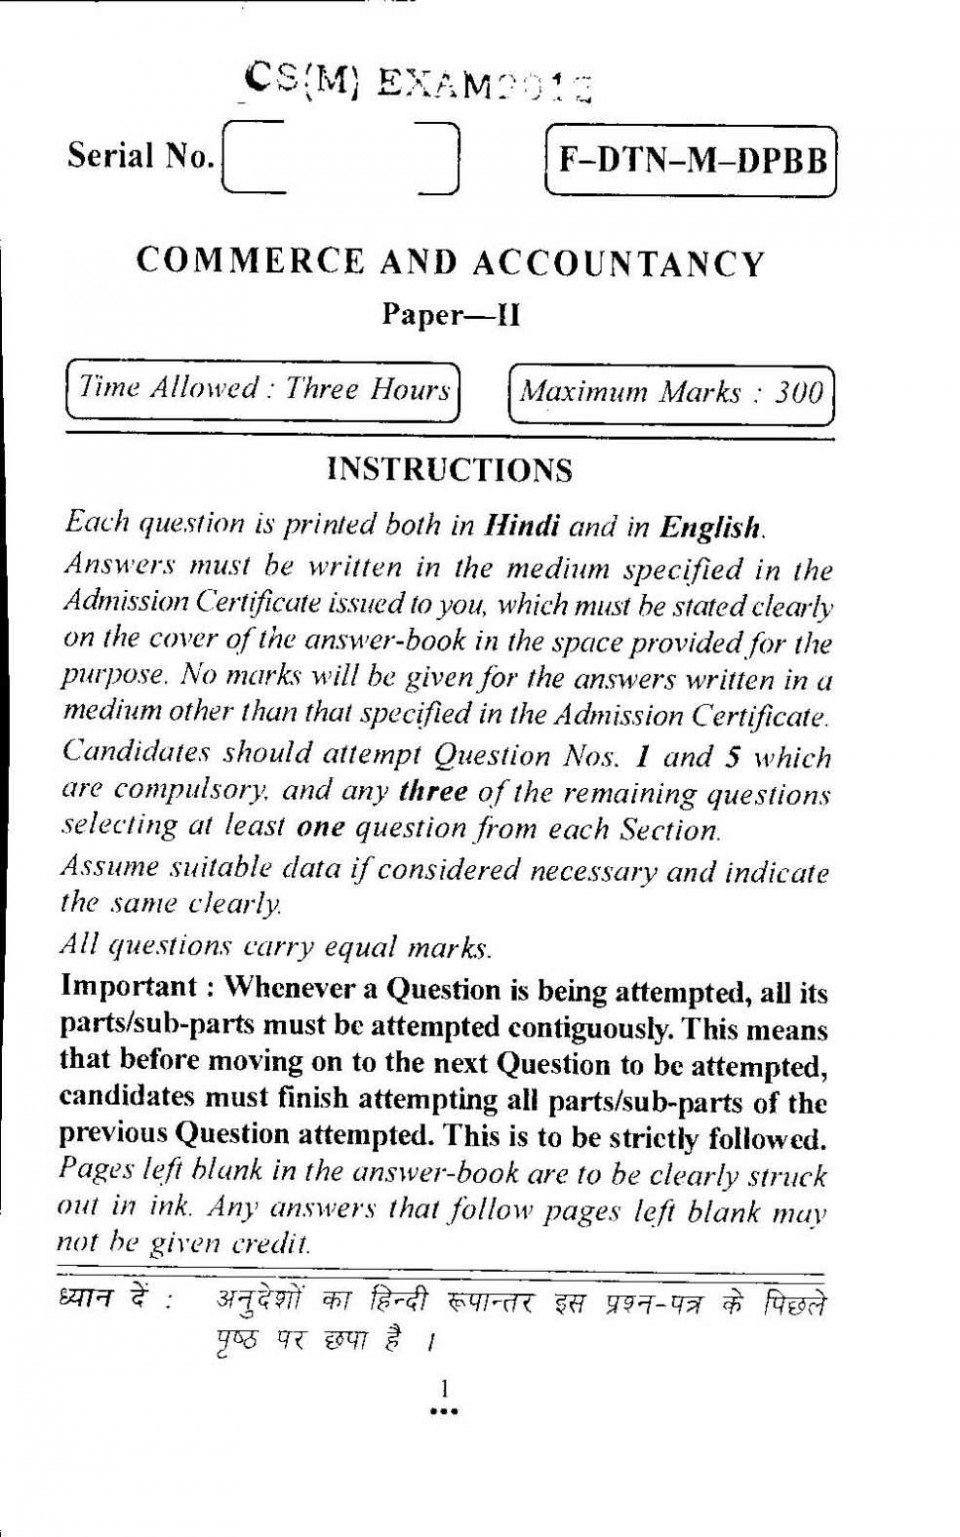 011 Civil Services Examination Commerce And Accountancy Paper Ii Previous Years Que Essay Example Marvelous Racism Conclusion Pdf Tkam 960